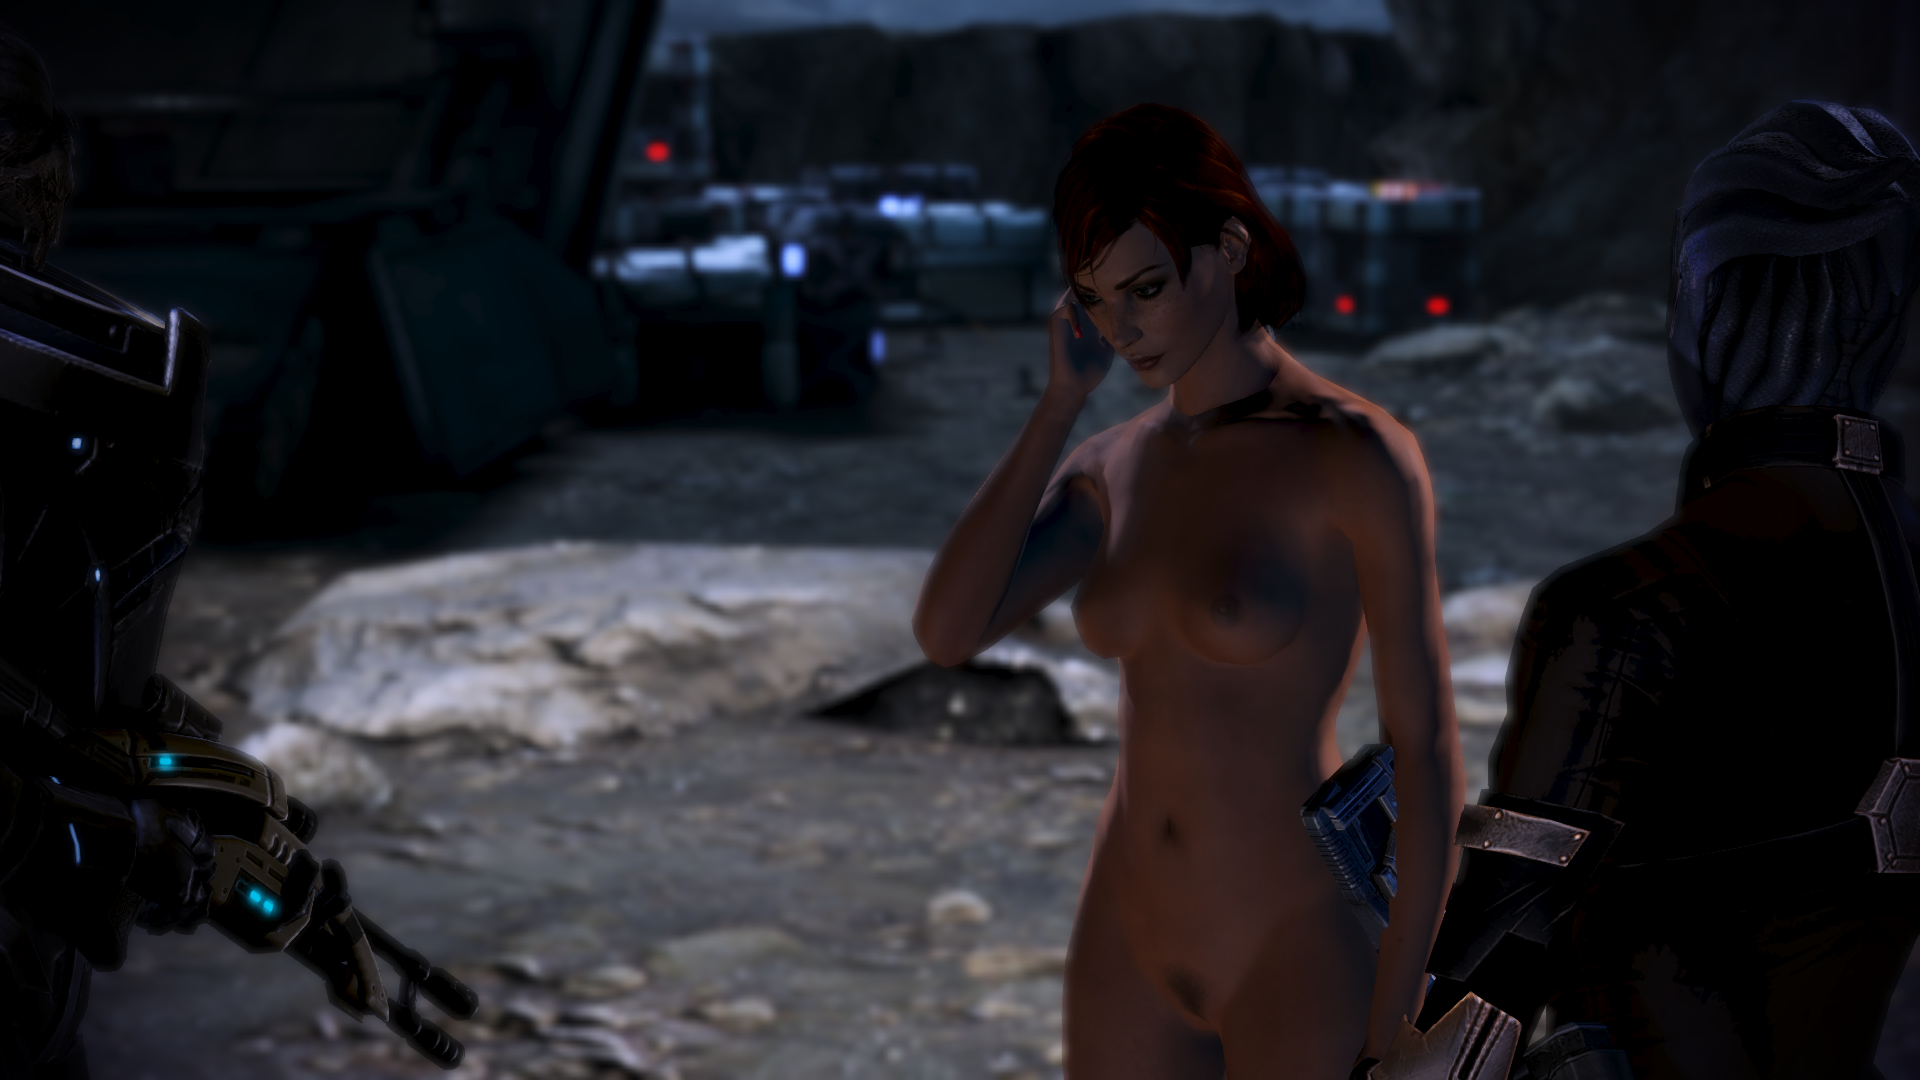 You tell Mass effect mod nude valuable information